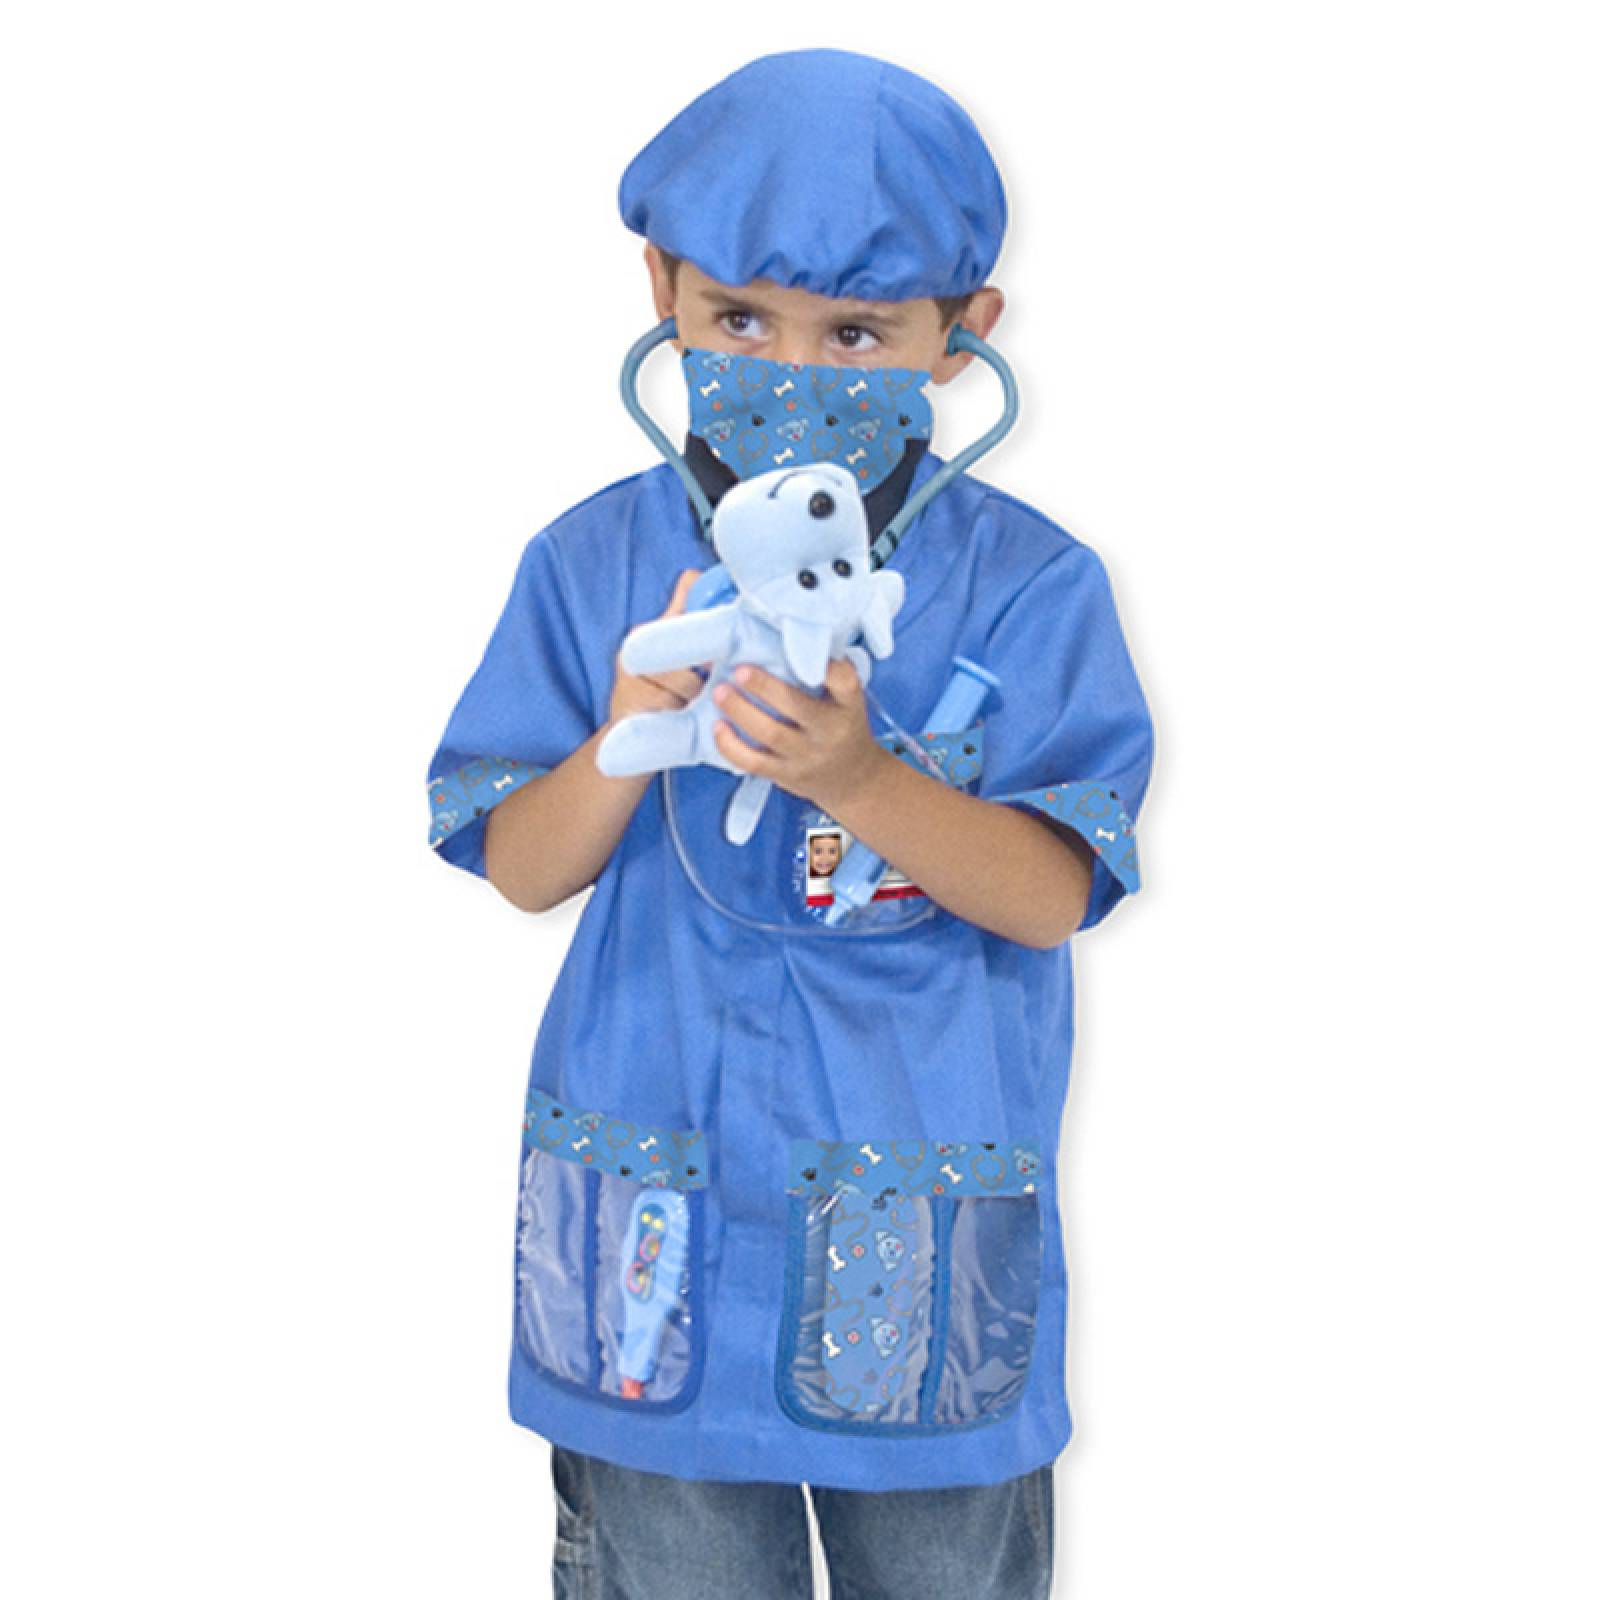 Veterinarian Fancy Dress Role Play Costume Set